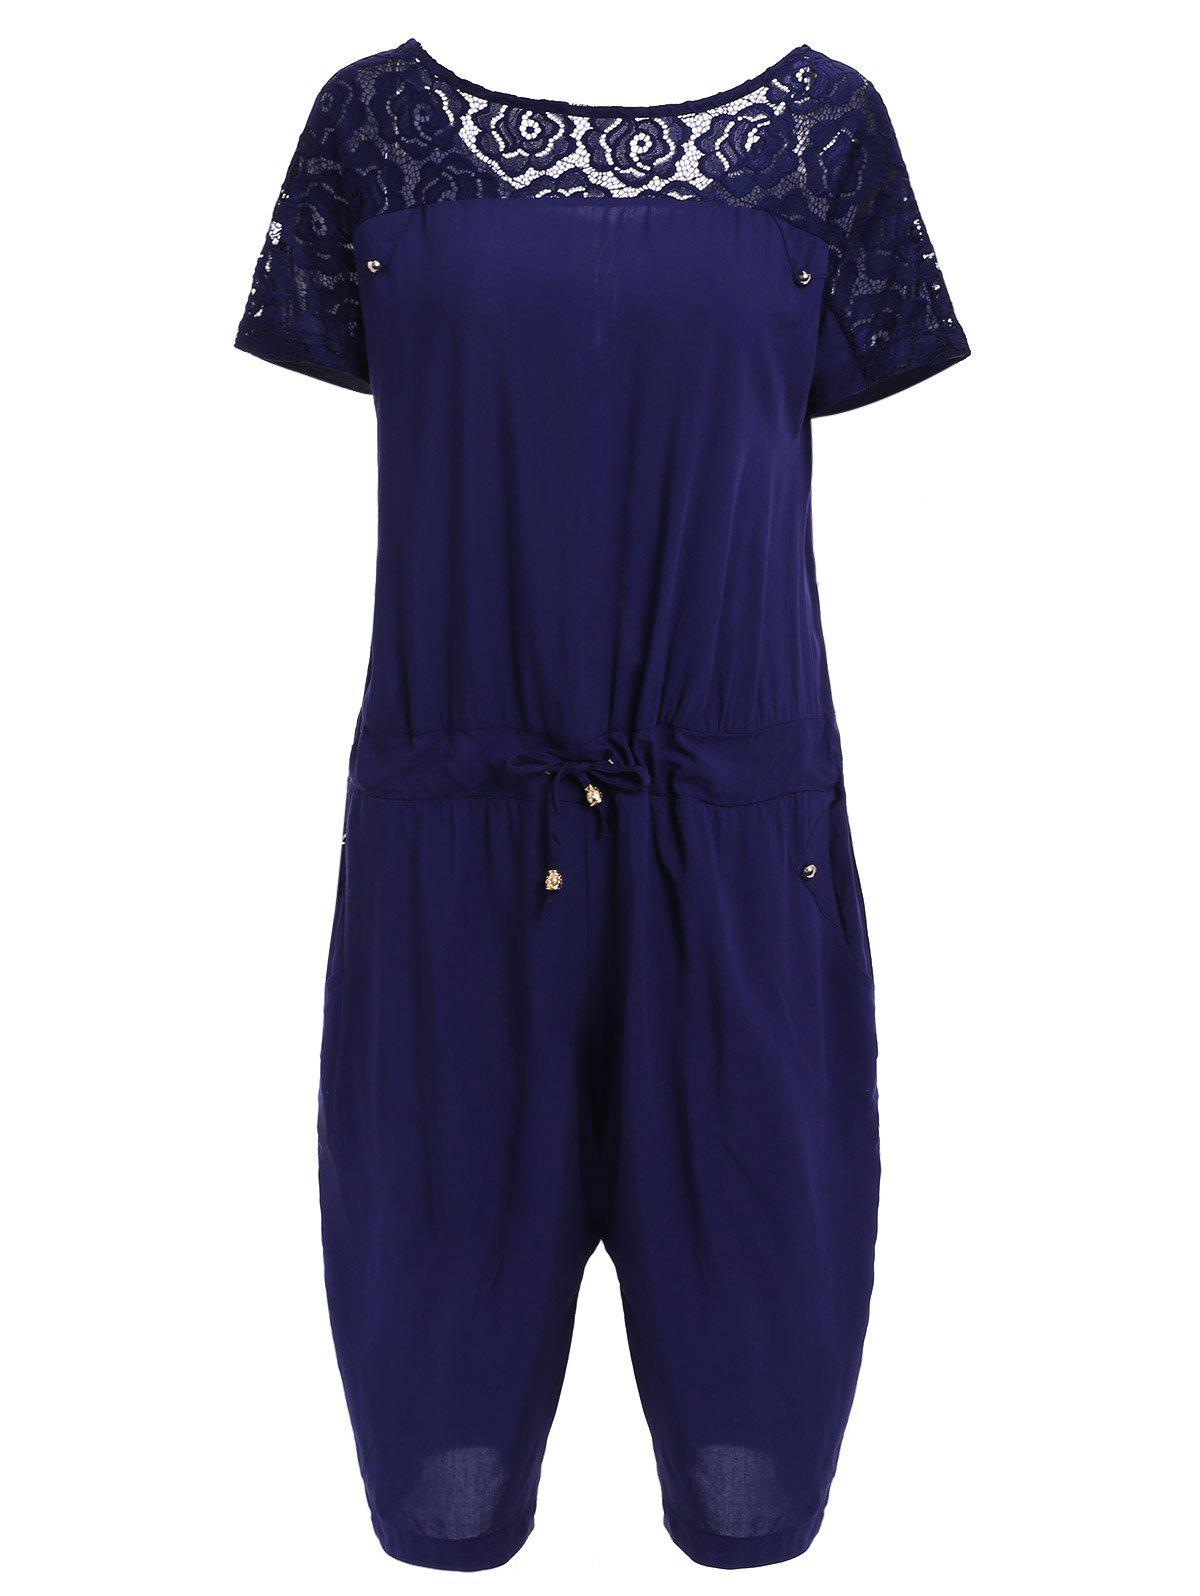 Casual Style Round Neck Short Sleeve Lace Spliced Plus Size Women's Romper - PURPLISH BLUE XL